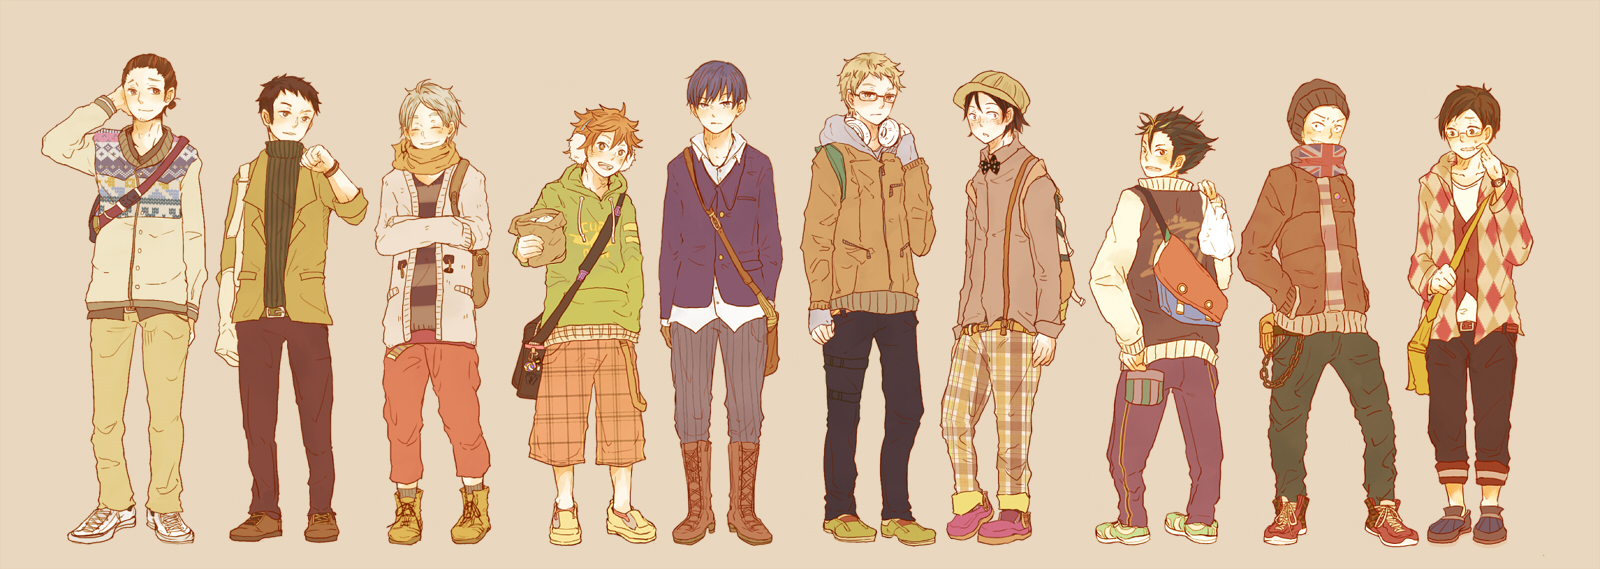 anime clothing styles for boys